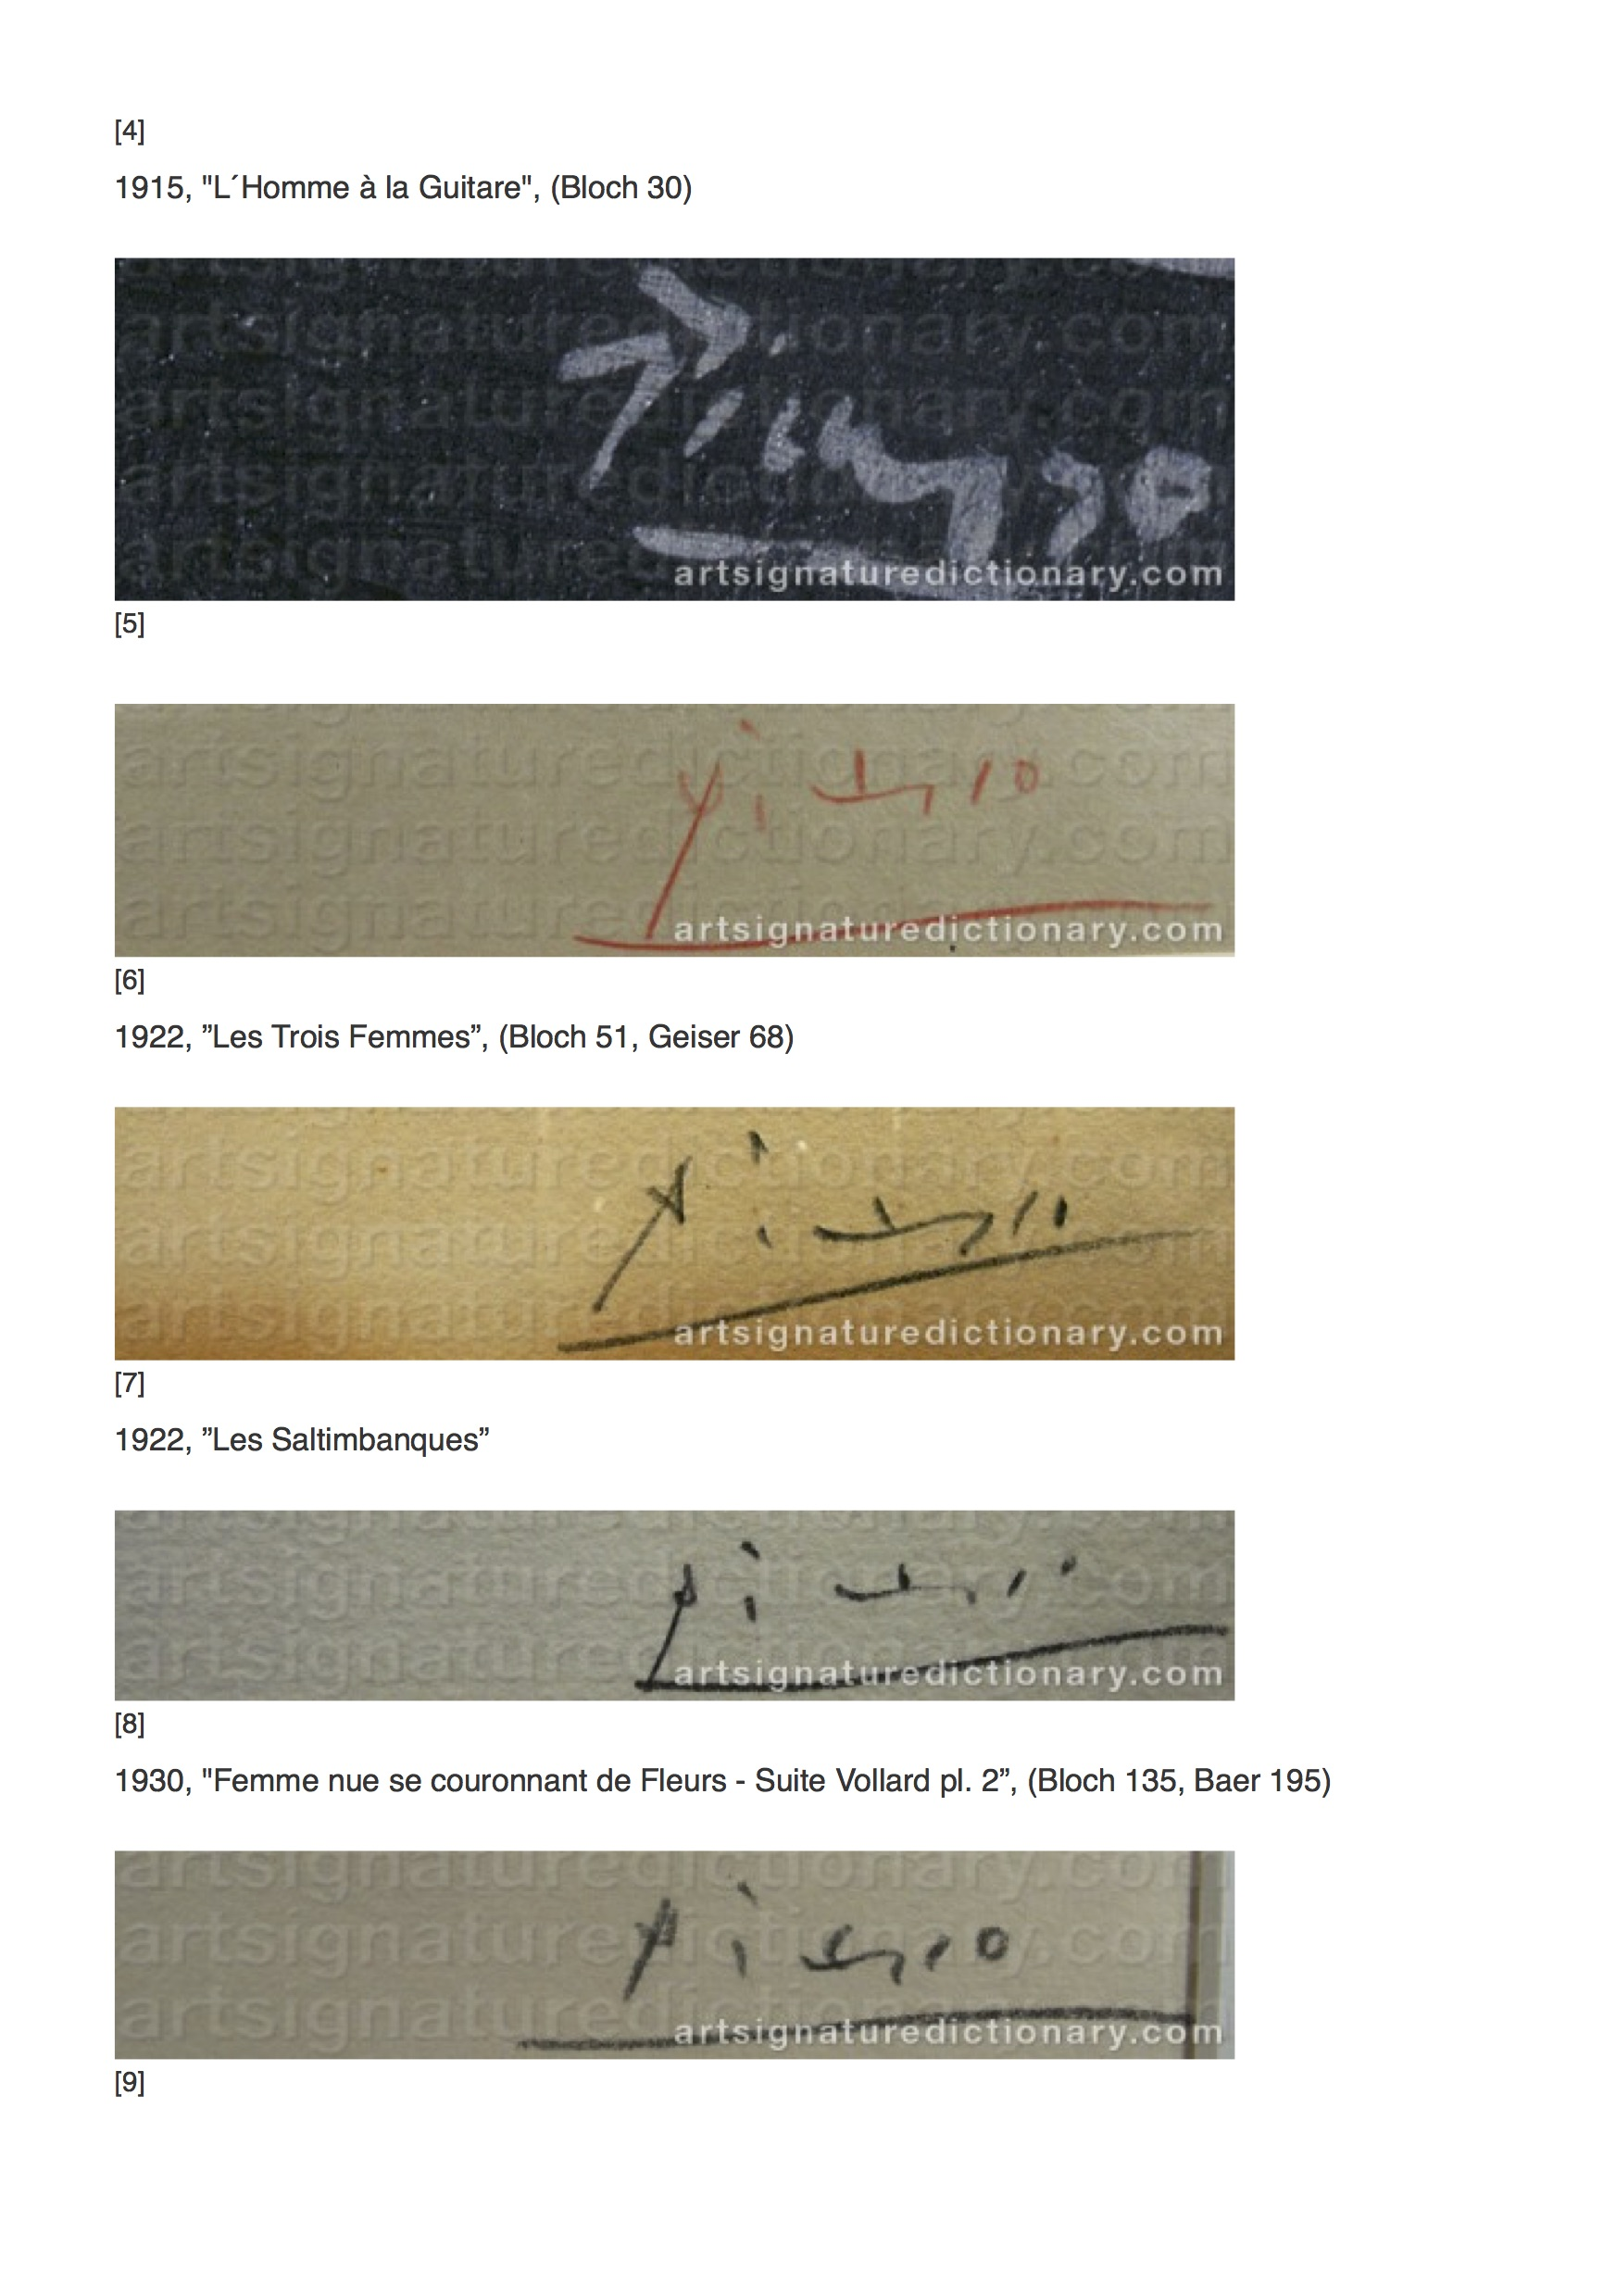 PICASSO, Pablo _ Artist's signatures and monograms, biographies and prices by Art Signature Dictionary2.jpg